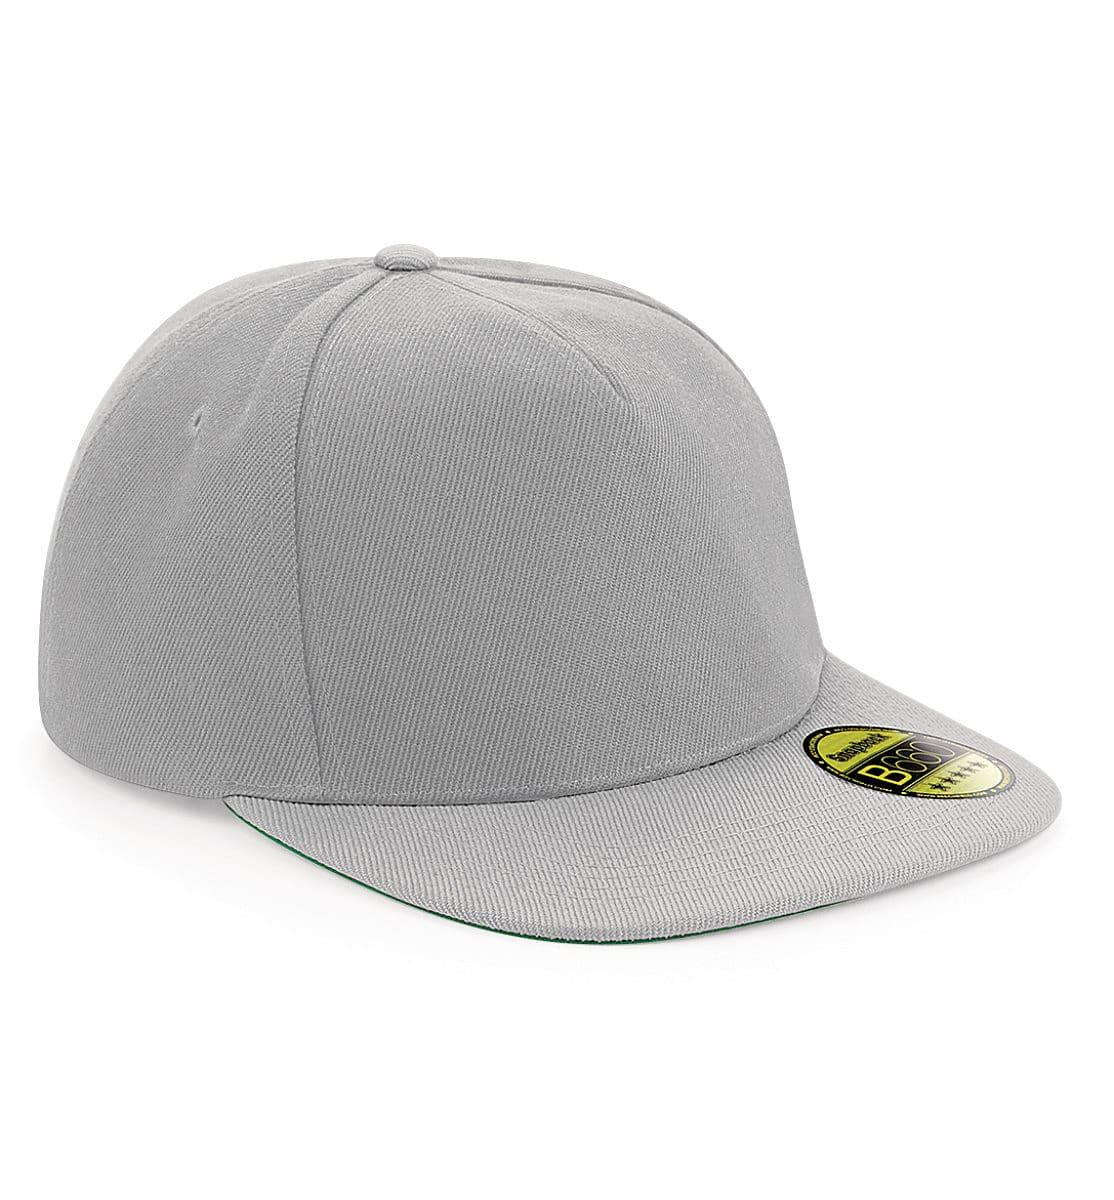 Beechfield Original Flat Peak Snapback in Grey (Product Code: B660)